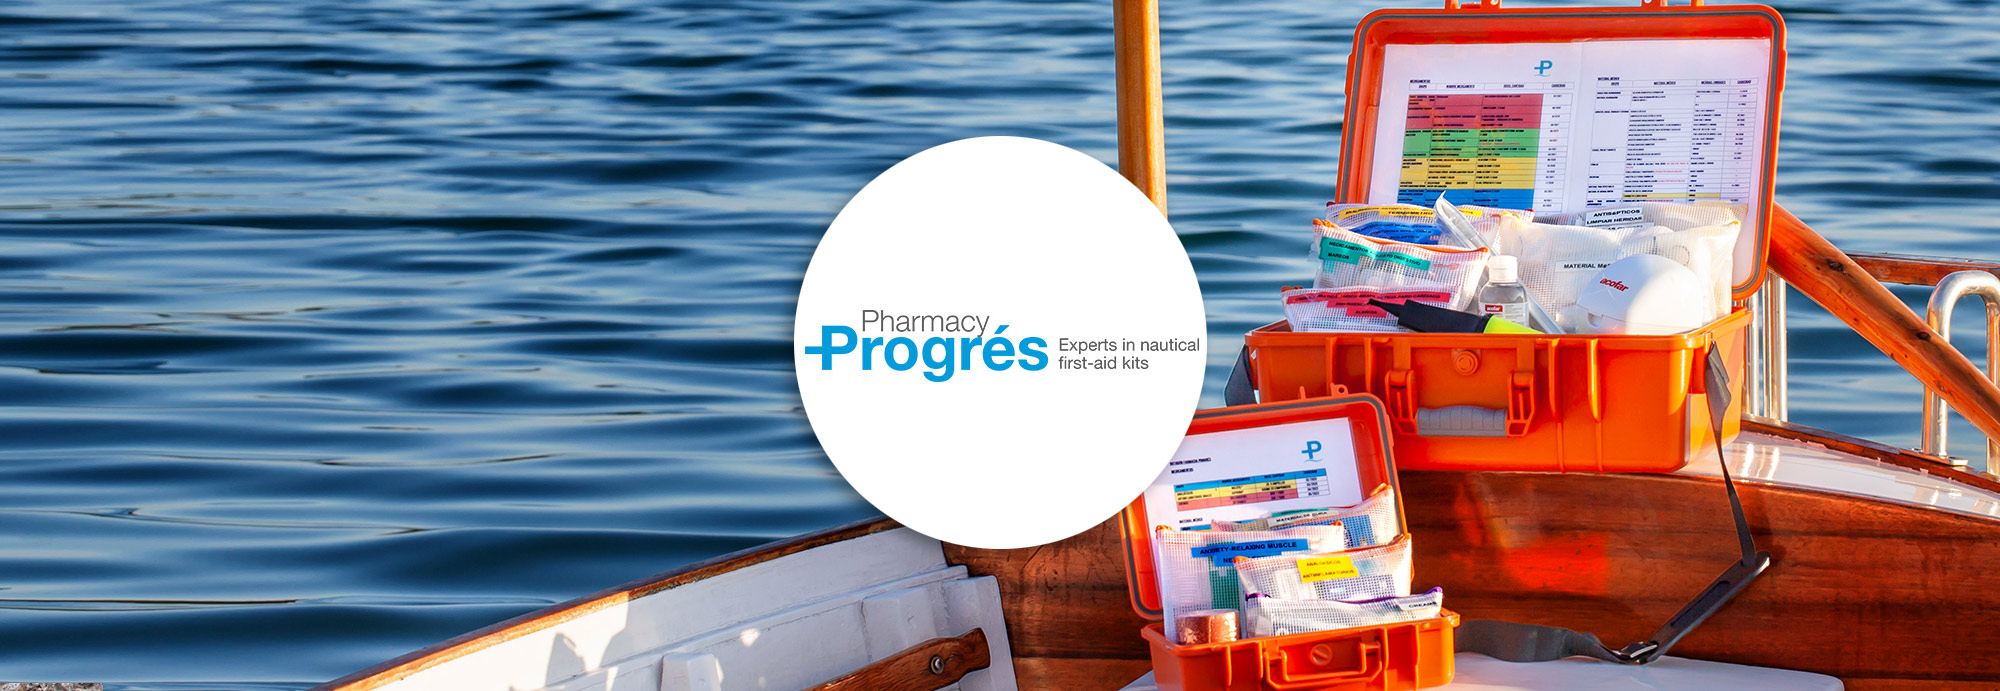 Pharmacy Progrés - Experts in nautical first-aid kits